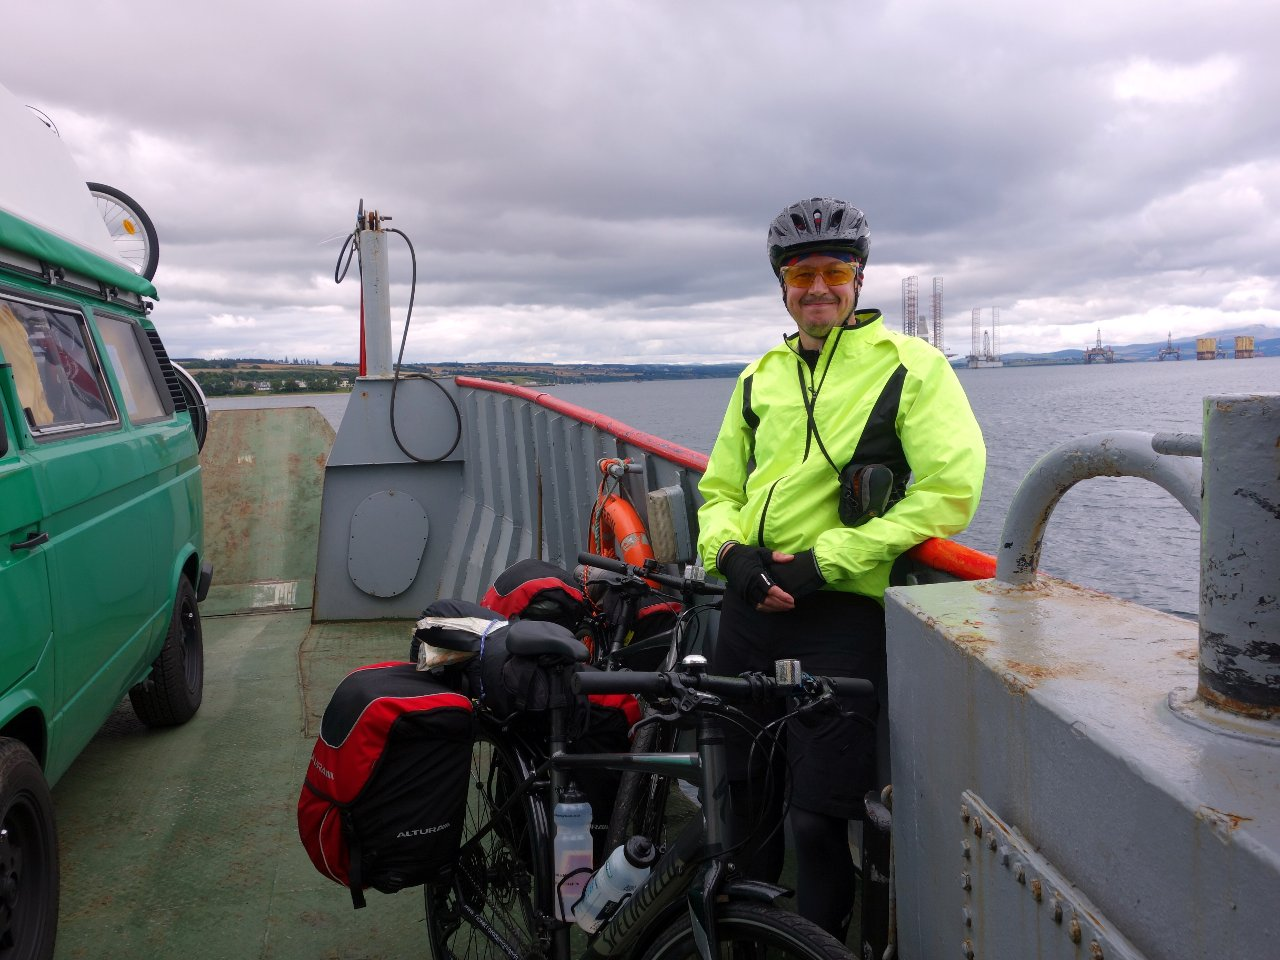 The Nigg to Cromarty ferry had just enough space for me and a camper van